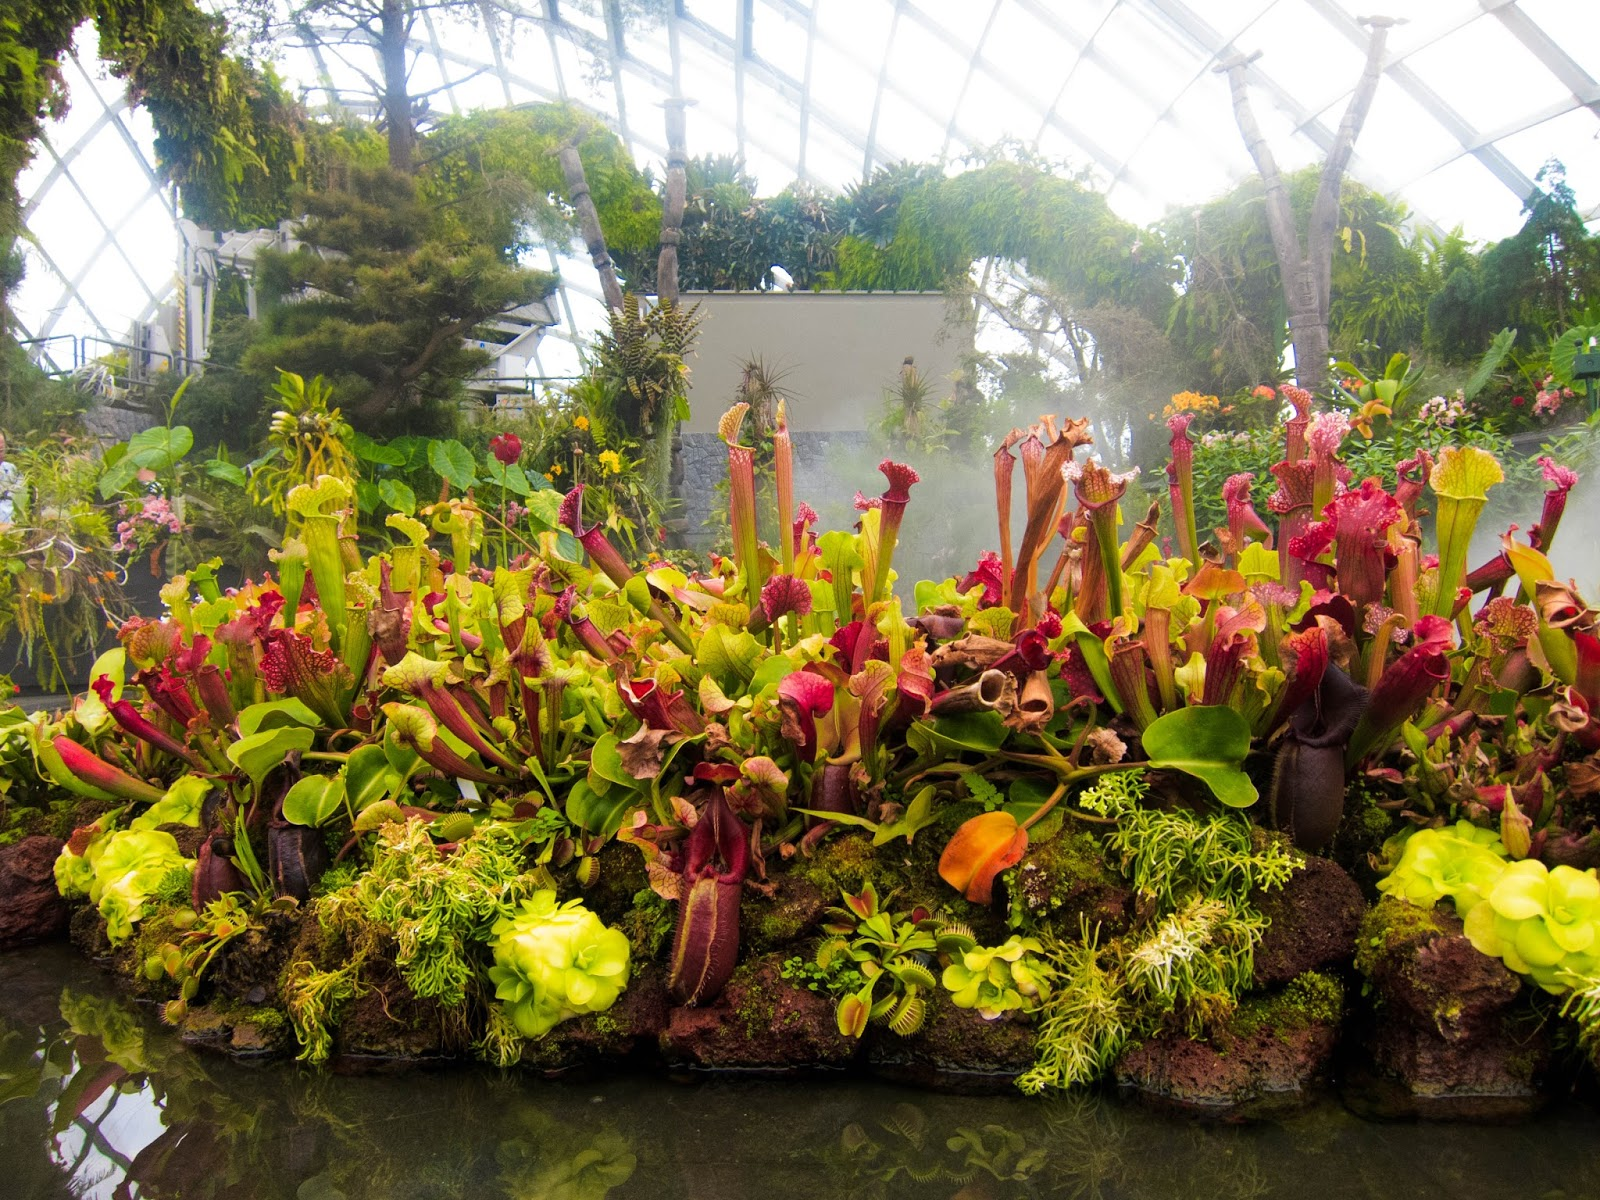 Insect-eating plants in pond in Cloud Forest, Gardens by the Bay in Singapore | Svelte Salivations - Travel